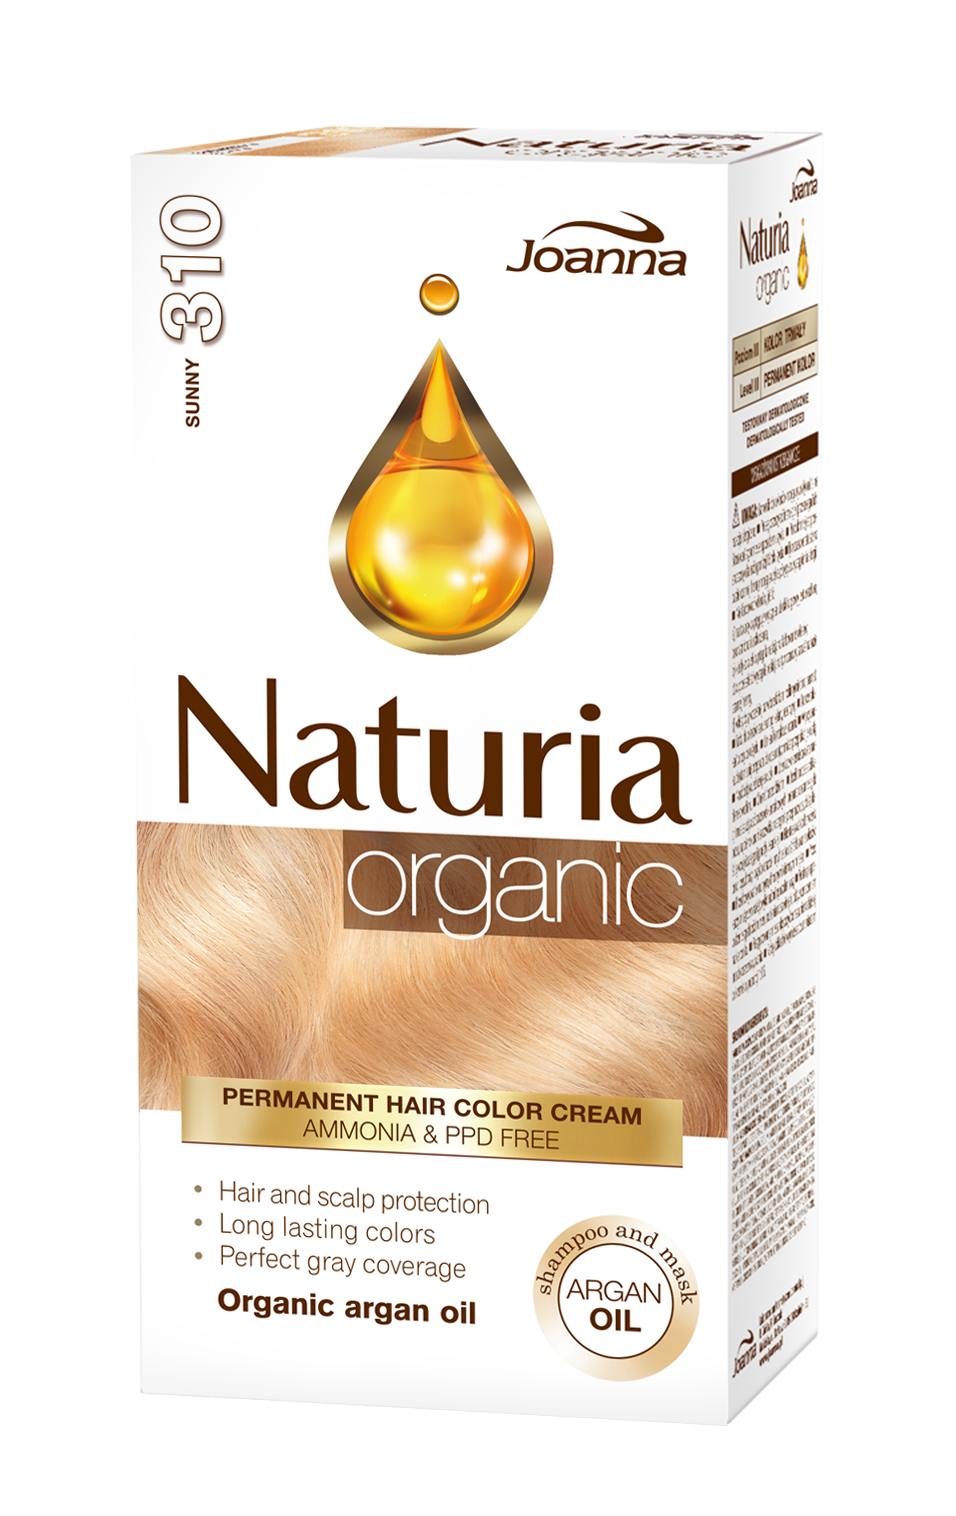 Naturia Organic Permanent Ppf Free Hair Color Cream